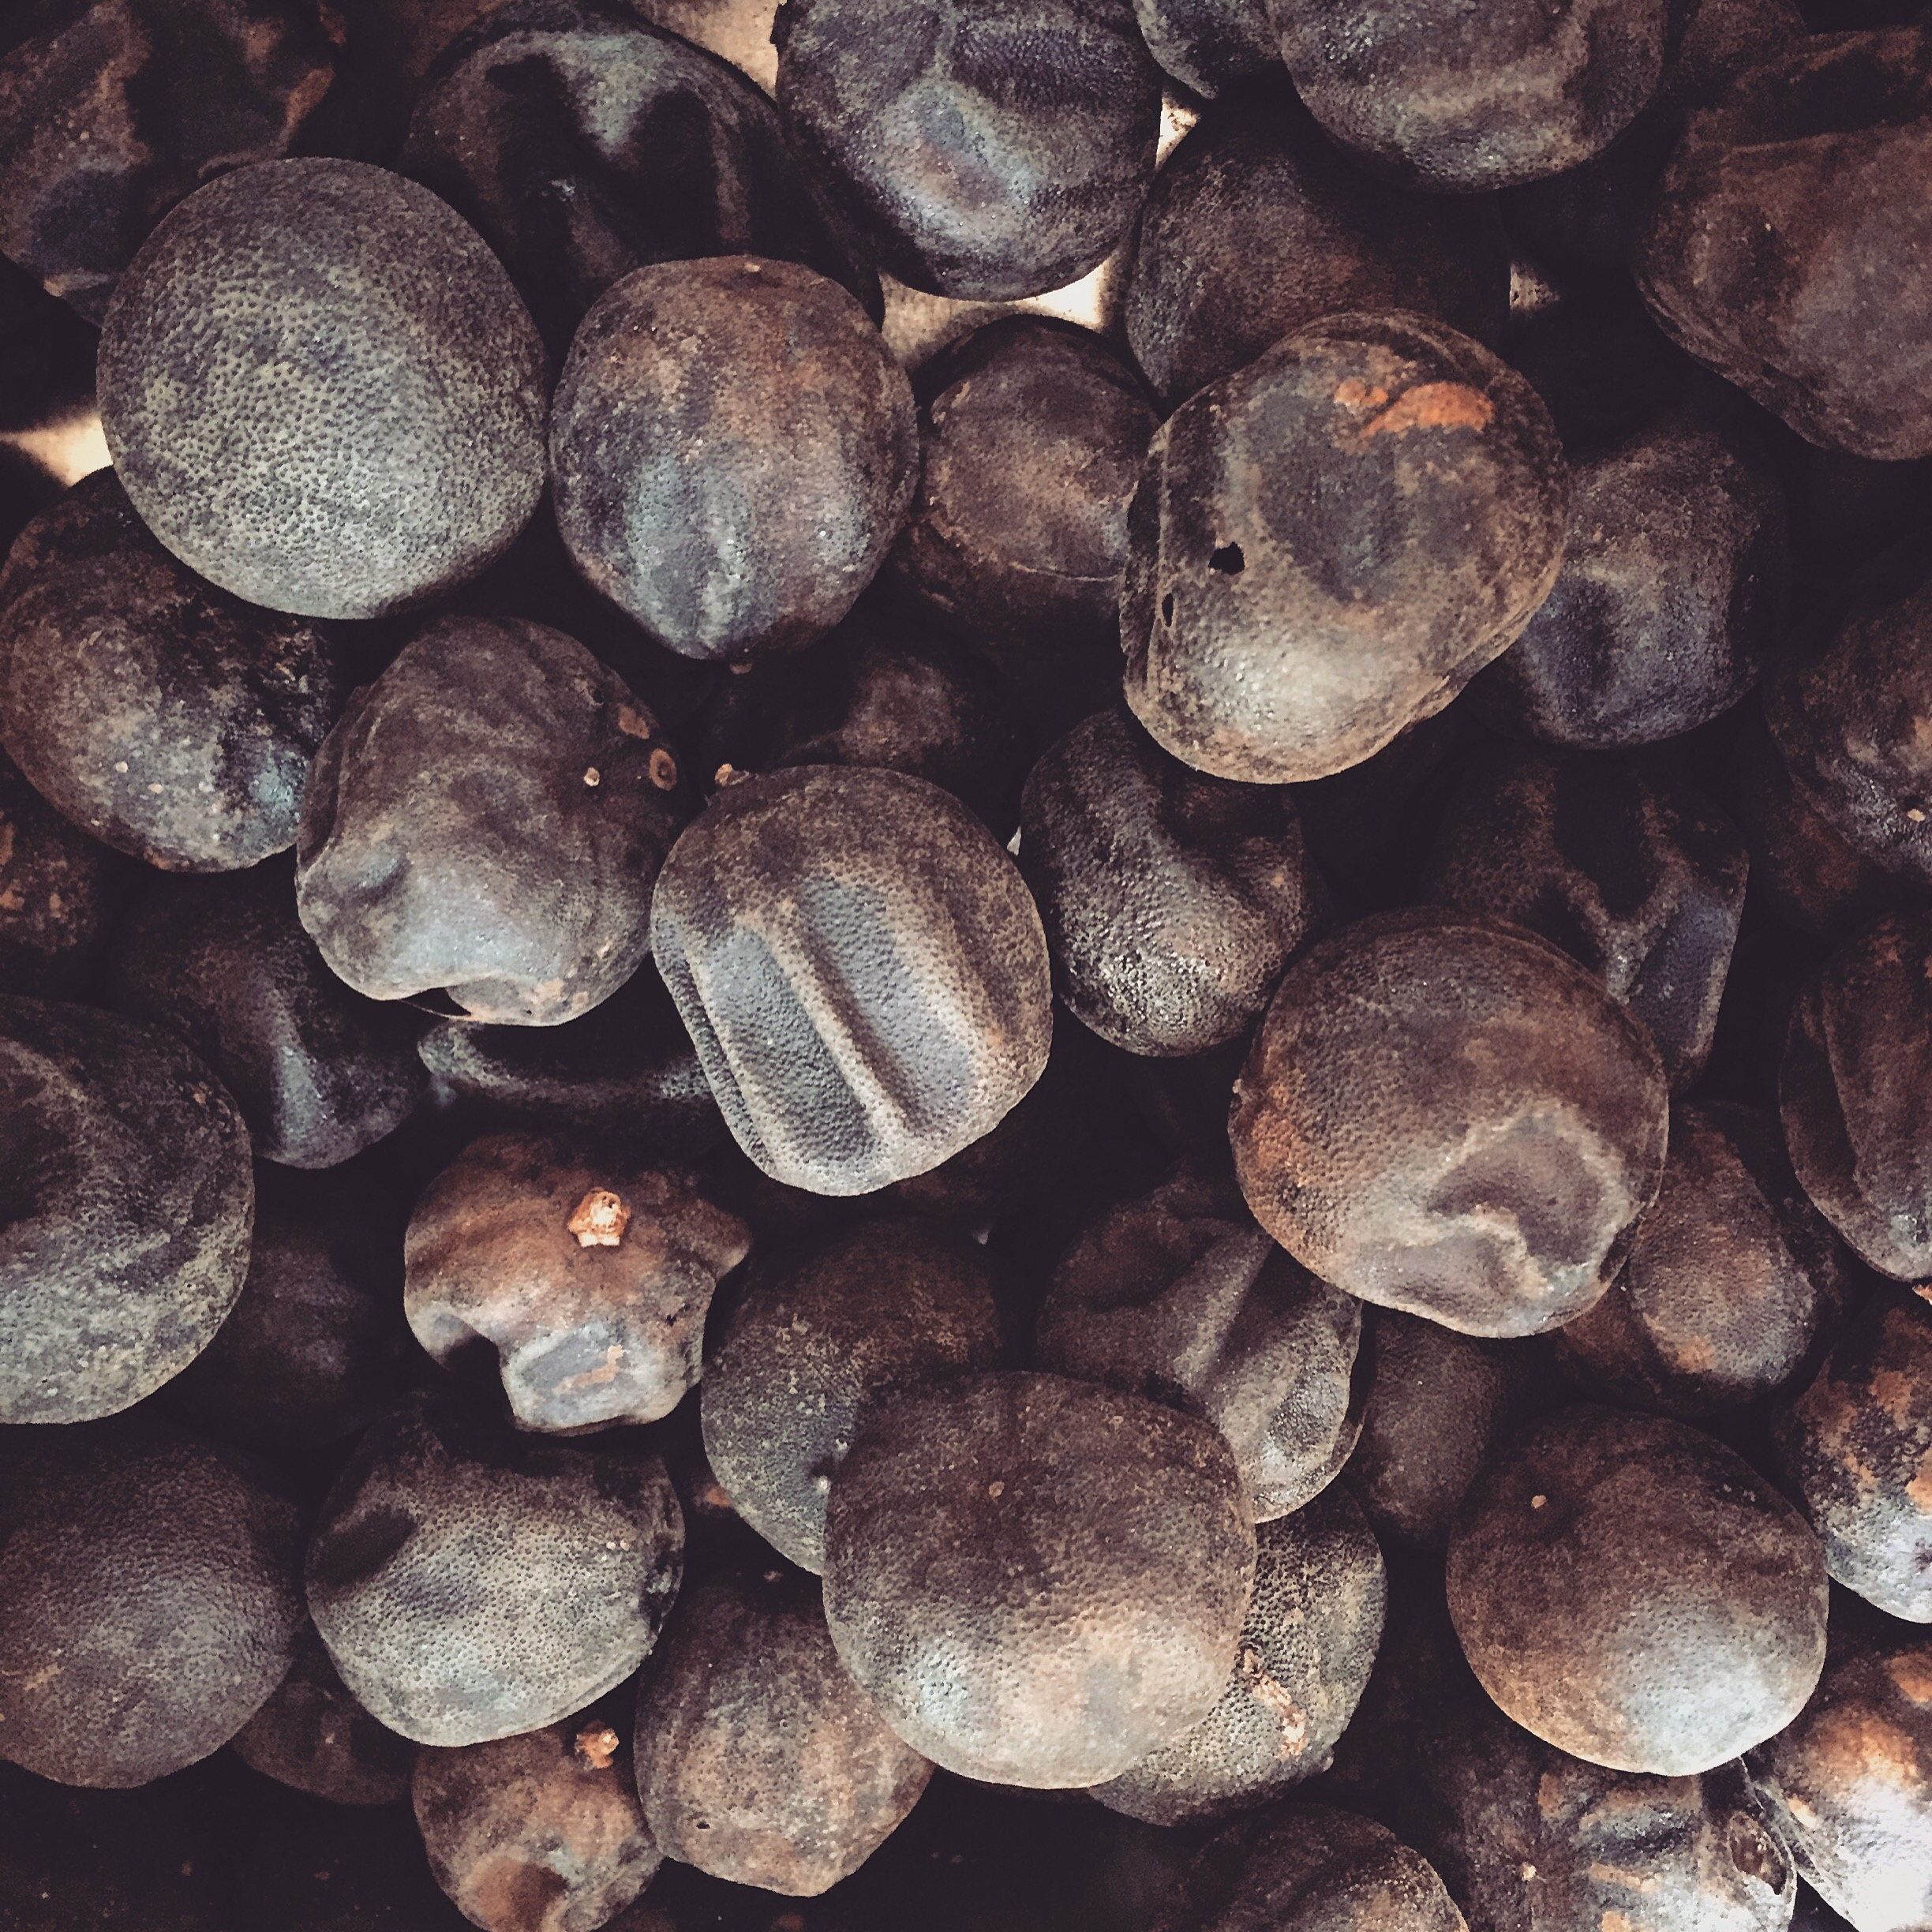 Whole dried limes. You can buy them like this or ground from Amazon or any international grocery store.